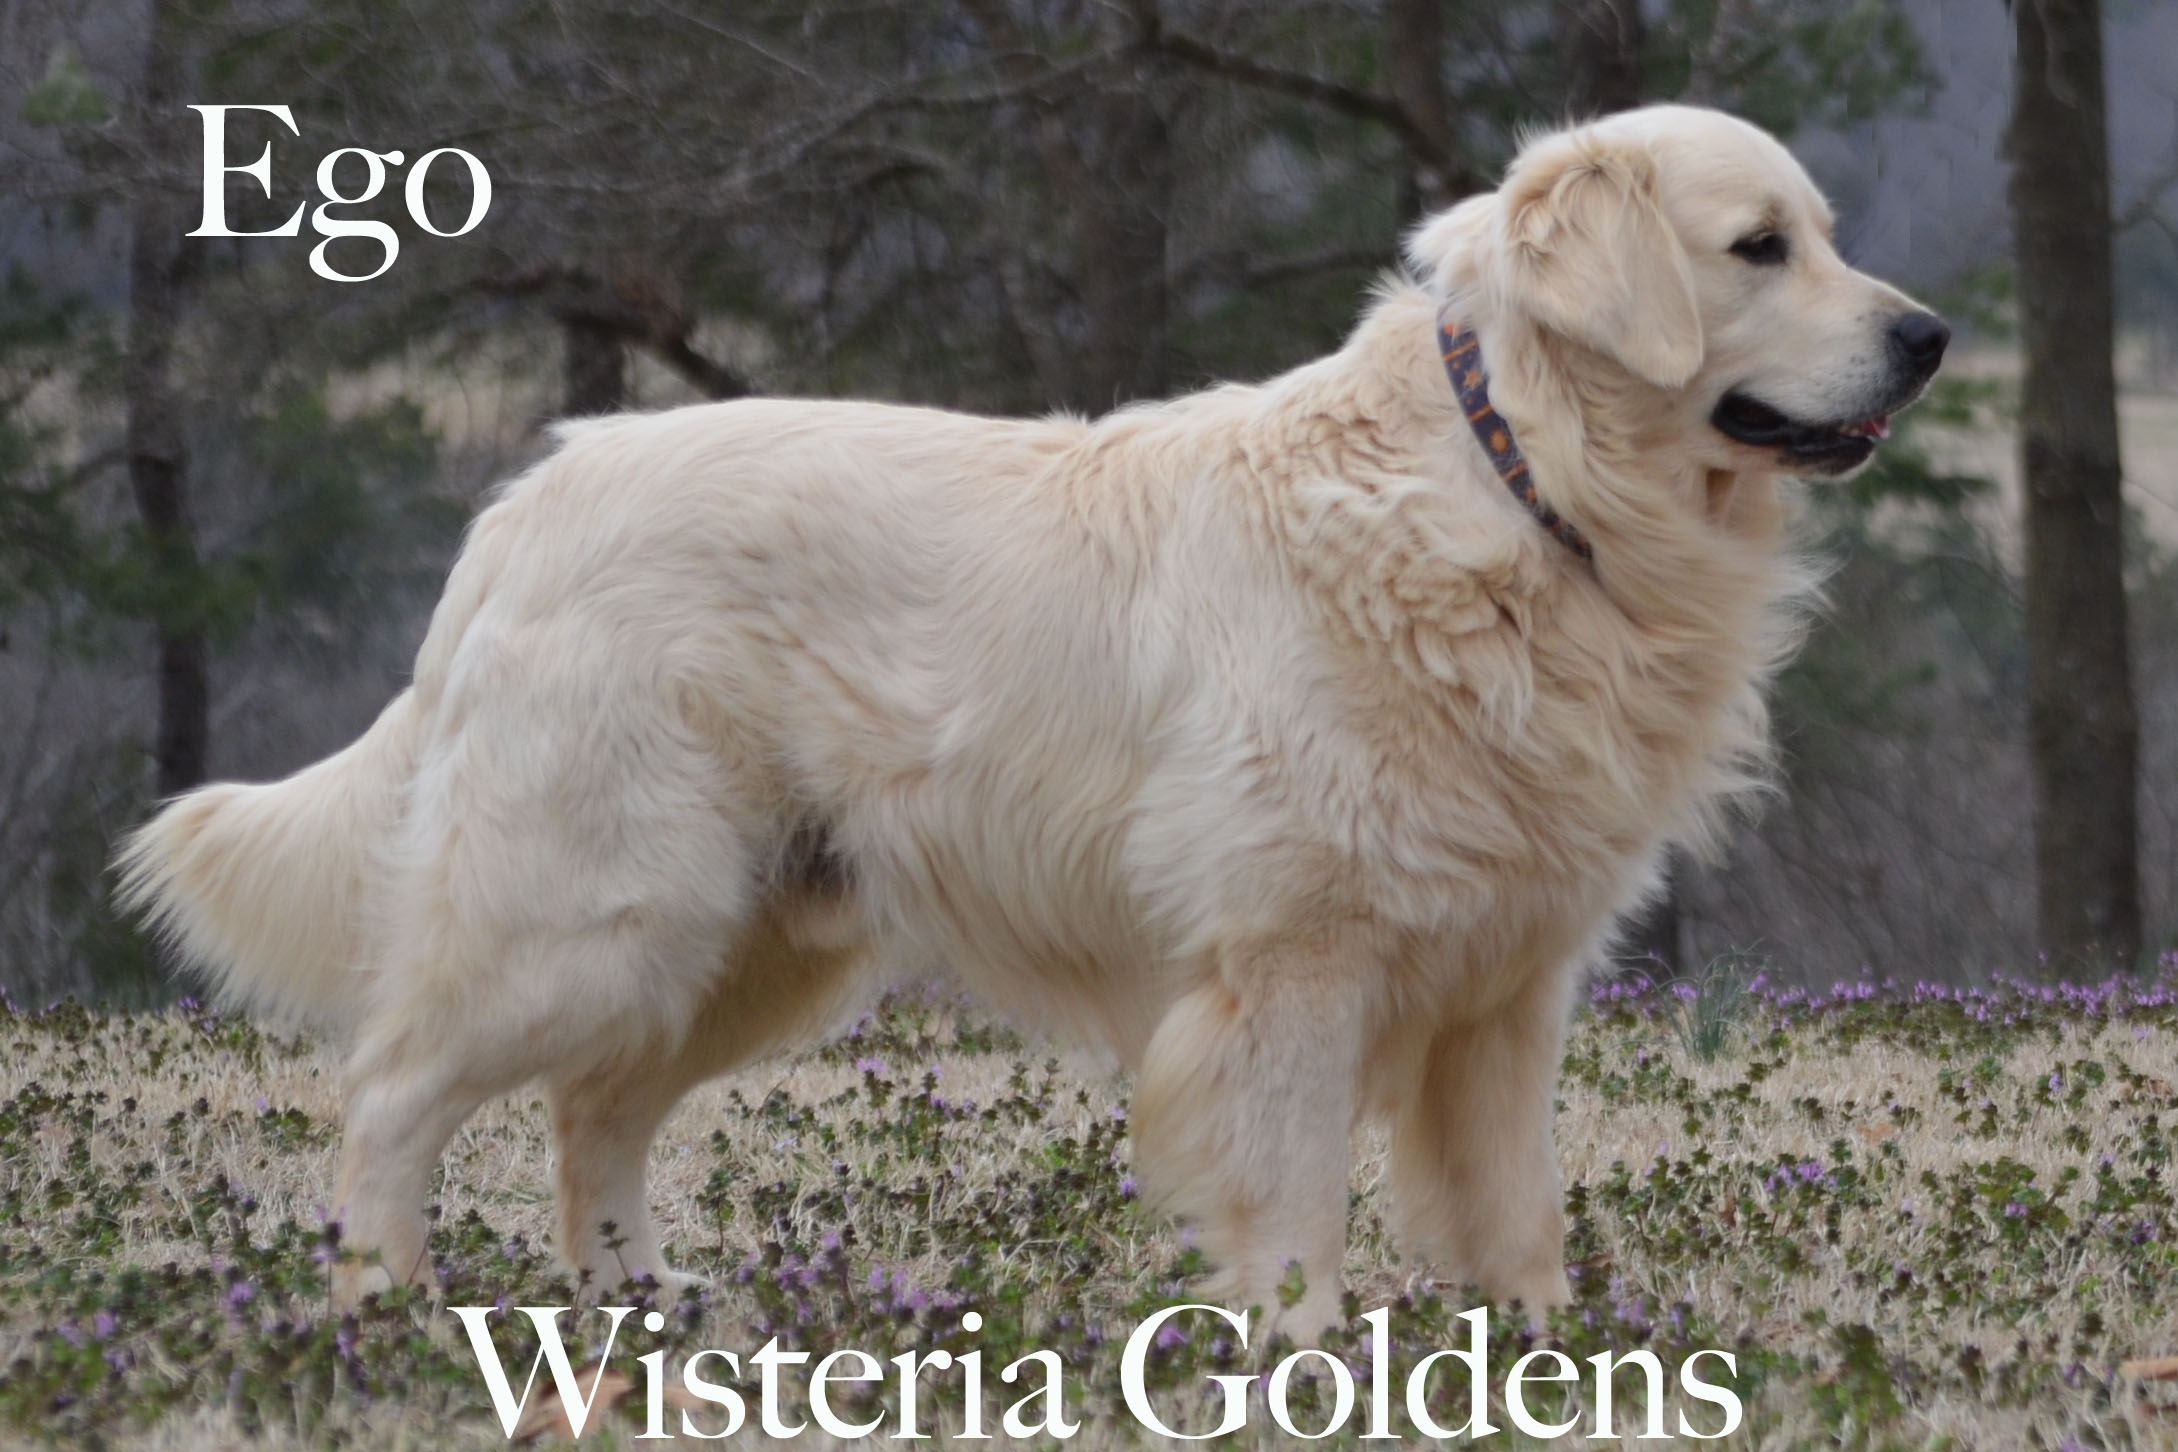 Ego_0121-full-english-creme-golden-retrievers-wisteria-goldens